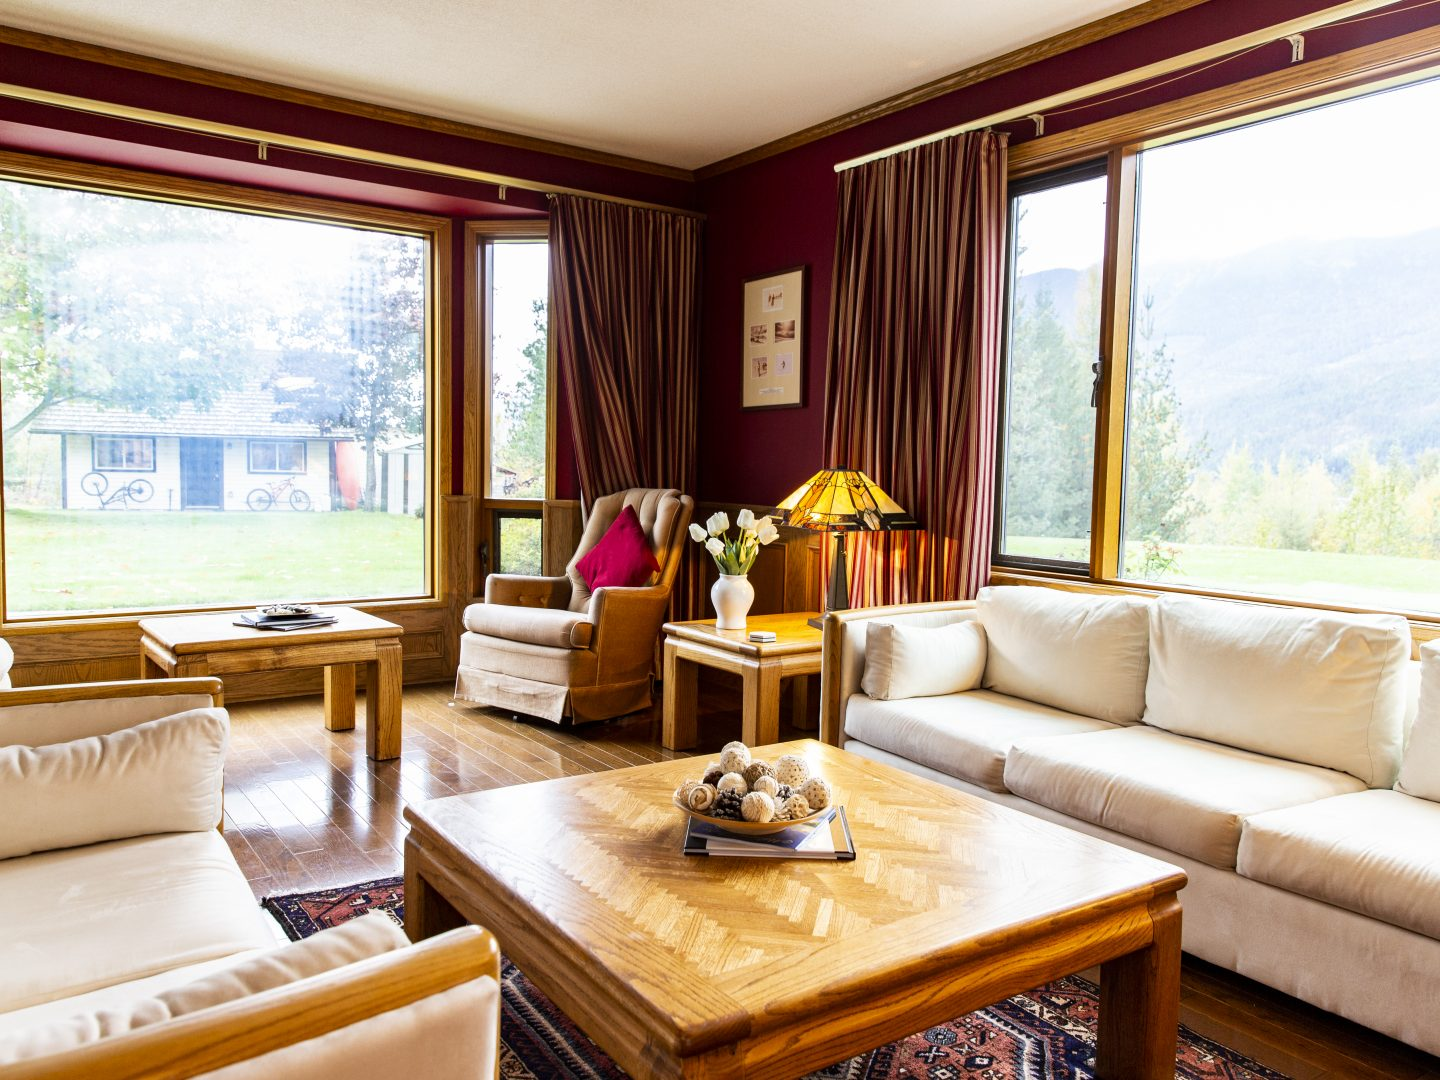 Stay Revy - Begbie View Retreat; Breathtaking Scenery and Luxury Property